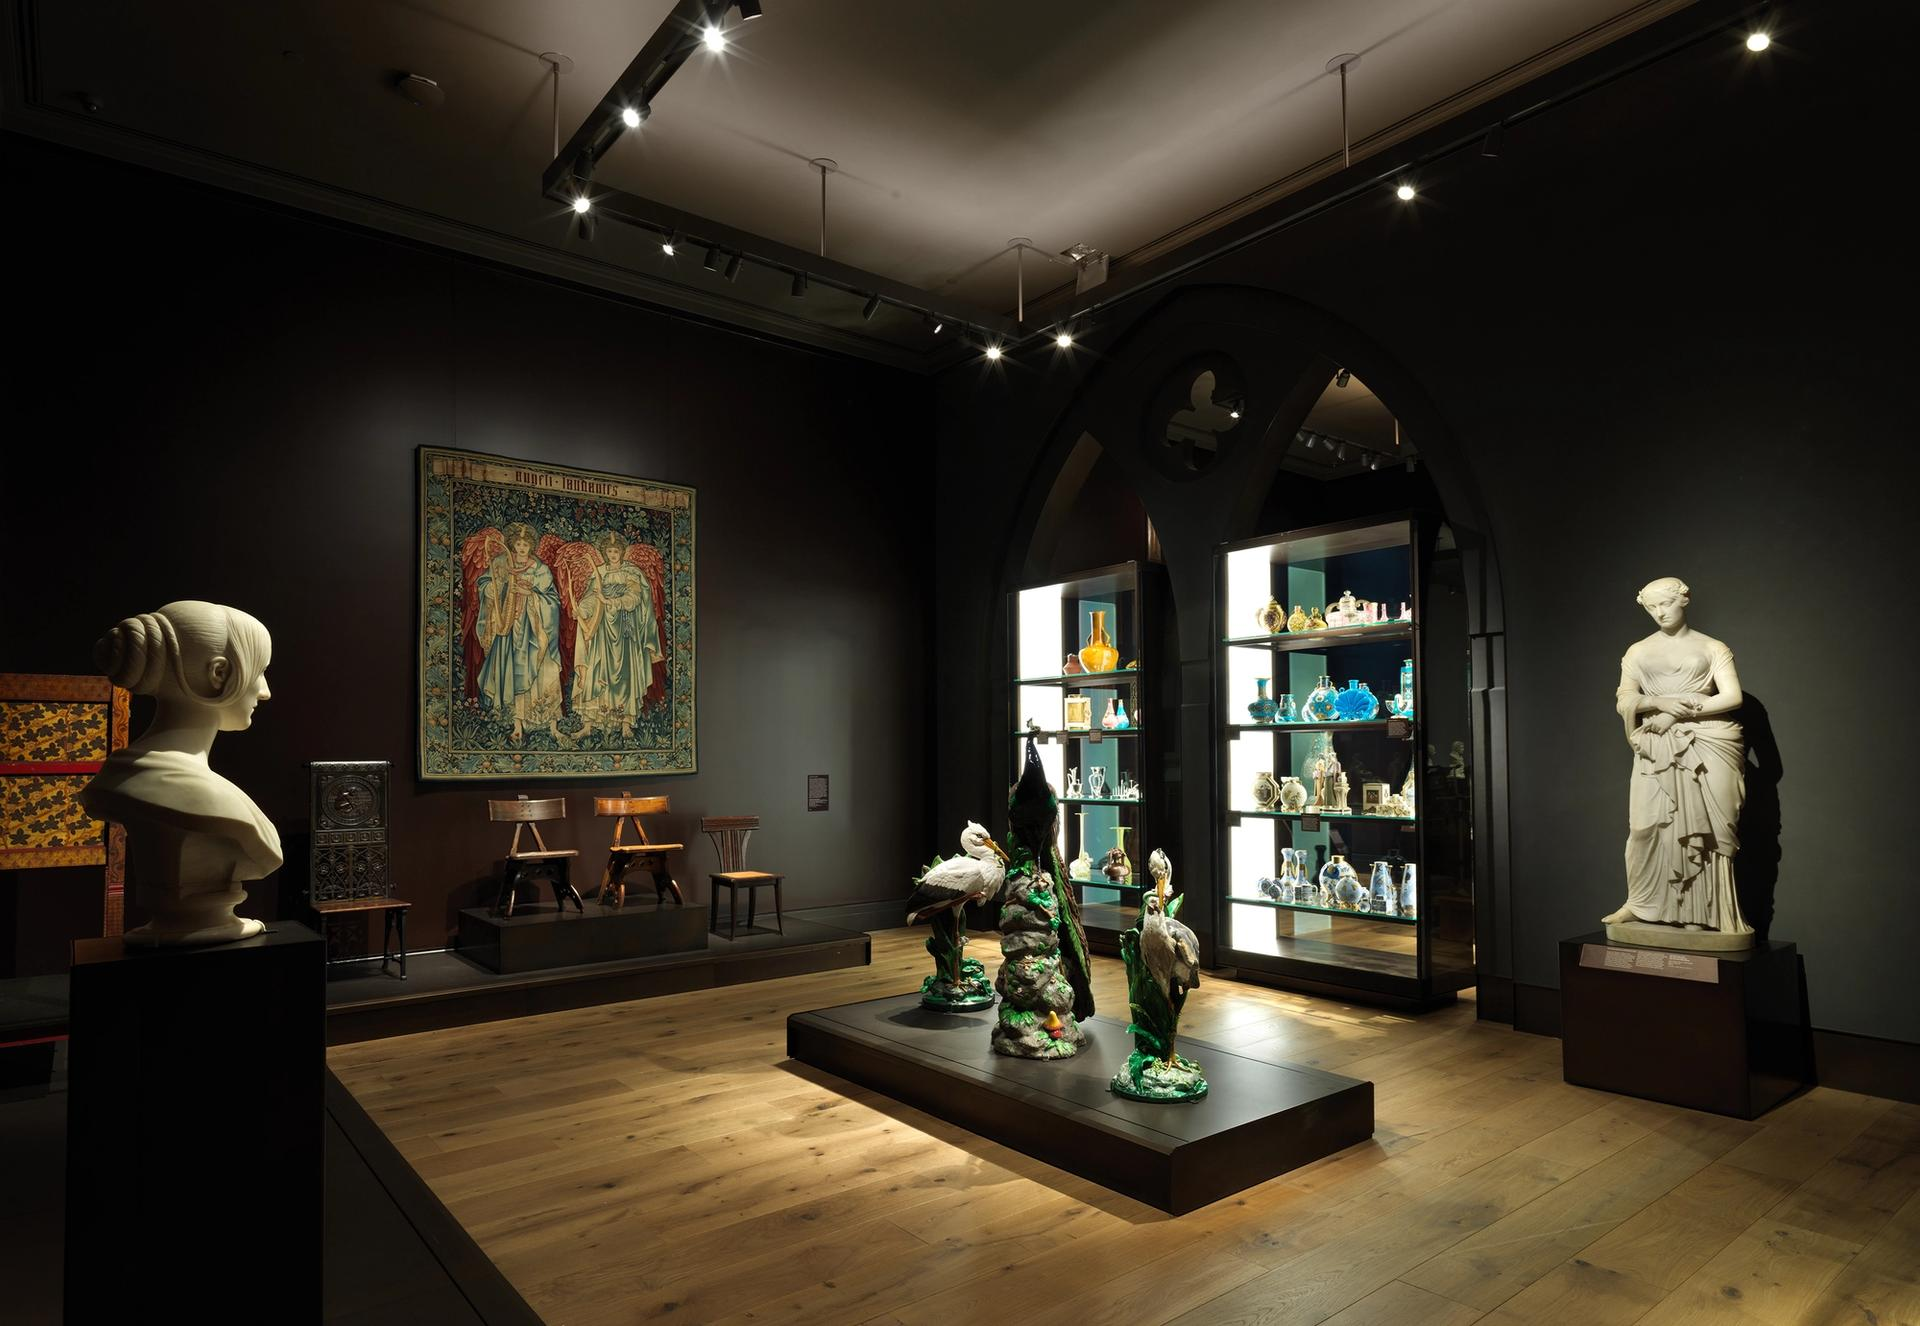 An installation view of a 19th-century room in the Metropolitan Museum of Art's new British galleries Photo by Joseph Coscia, February 2020/Courtesy of the Metropolitan Museum of Art